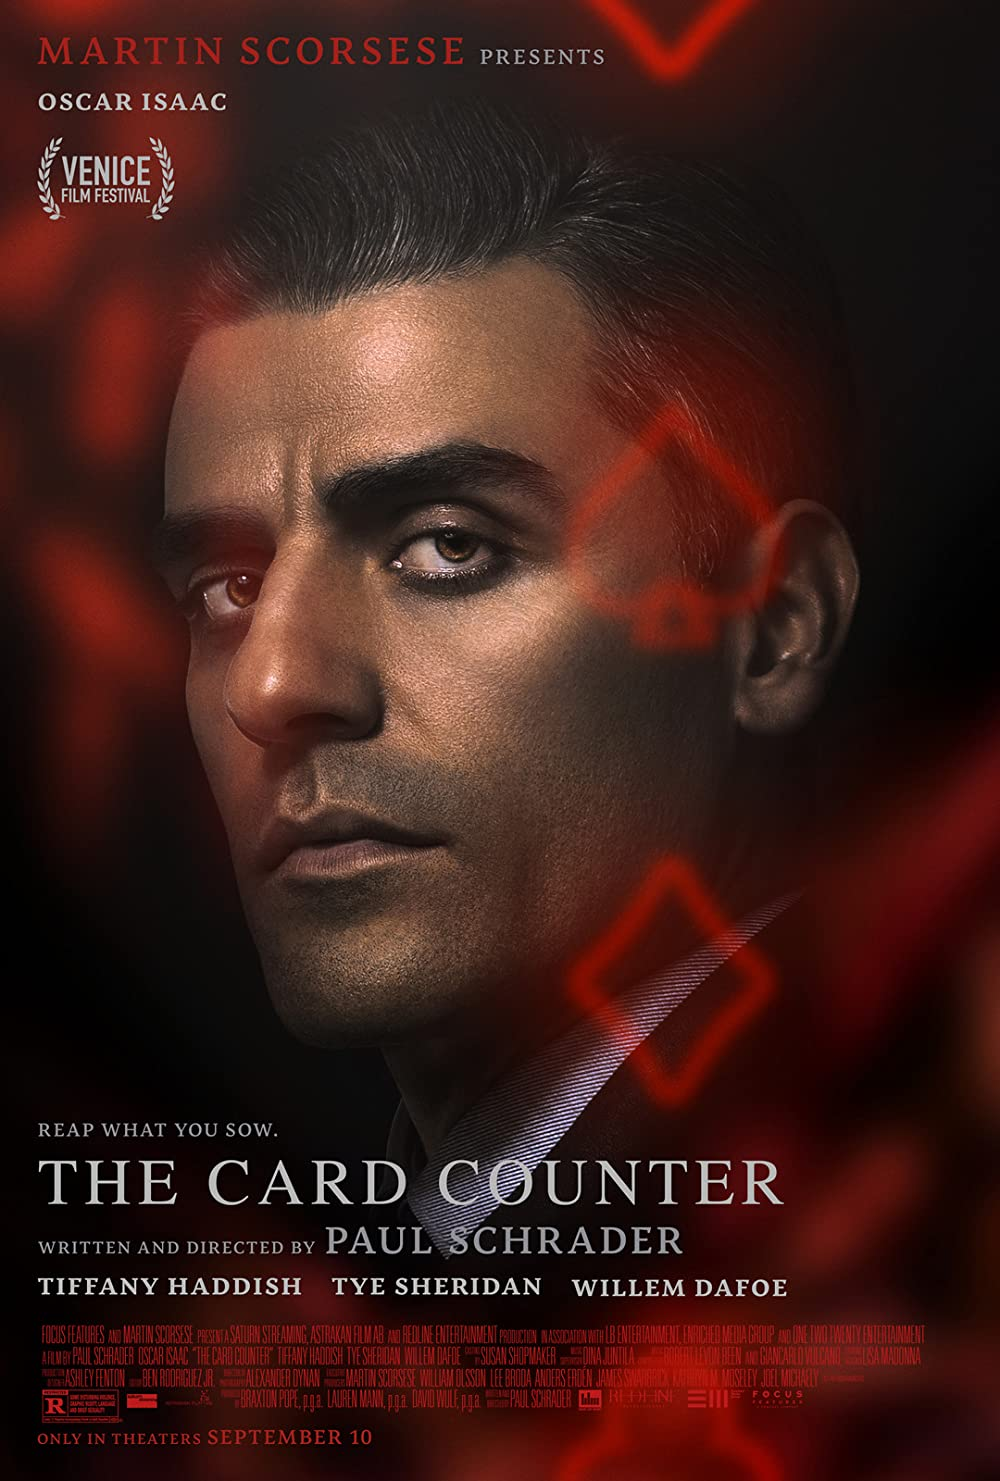 Poster for The Card Counter